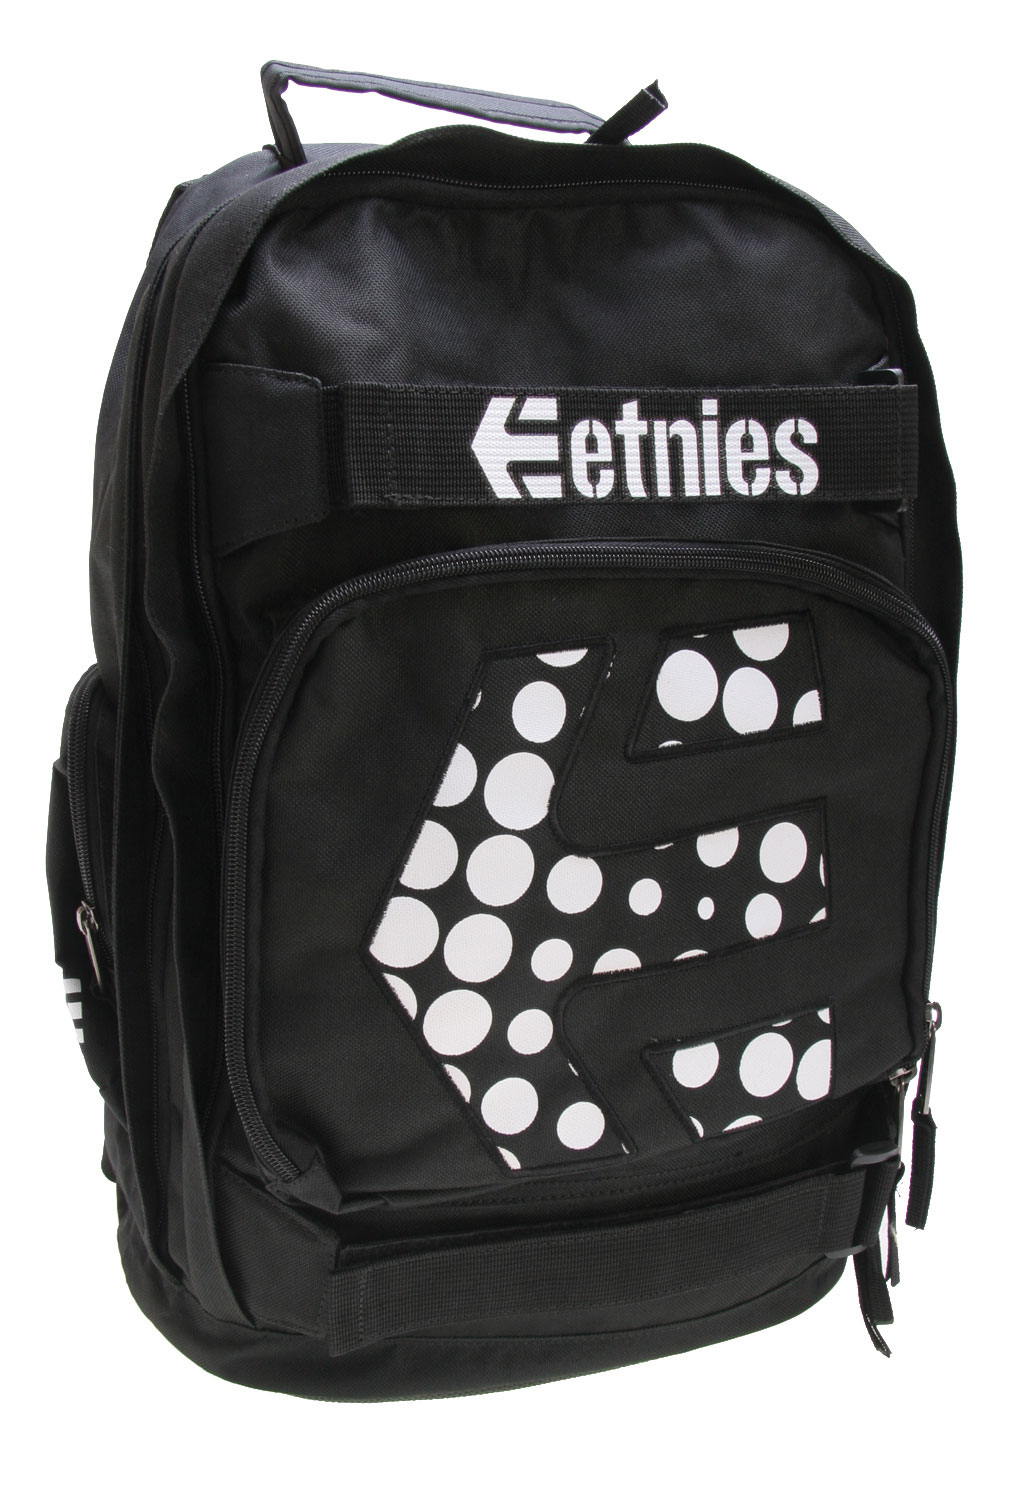 Skateboard The Etnie's Fosgate 3 Backpack is a true treat for Etnie's Action Apparel fans. It comes complete with custom featured art, black and white stock and ample room for books and more. Looking out for the comfort of the Etnie's fan is the 600 D Polyester material, a smooth fabric that's as easy on the eyes as it is the skin. So while you're living in style, it provides the cool realistic approach to back to school events. Key Features of the Etnies Fosgate 3 Backpack black/white Dual backpack compartments Vertical edge zippers Etnie's polyester comfortKey Features of the Etnies Fosgate 3 Backpack: 600D polyester back to school backpack with vertical front zipper One main compartment etnies custom screen-printed art - $36.95